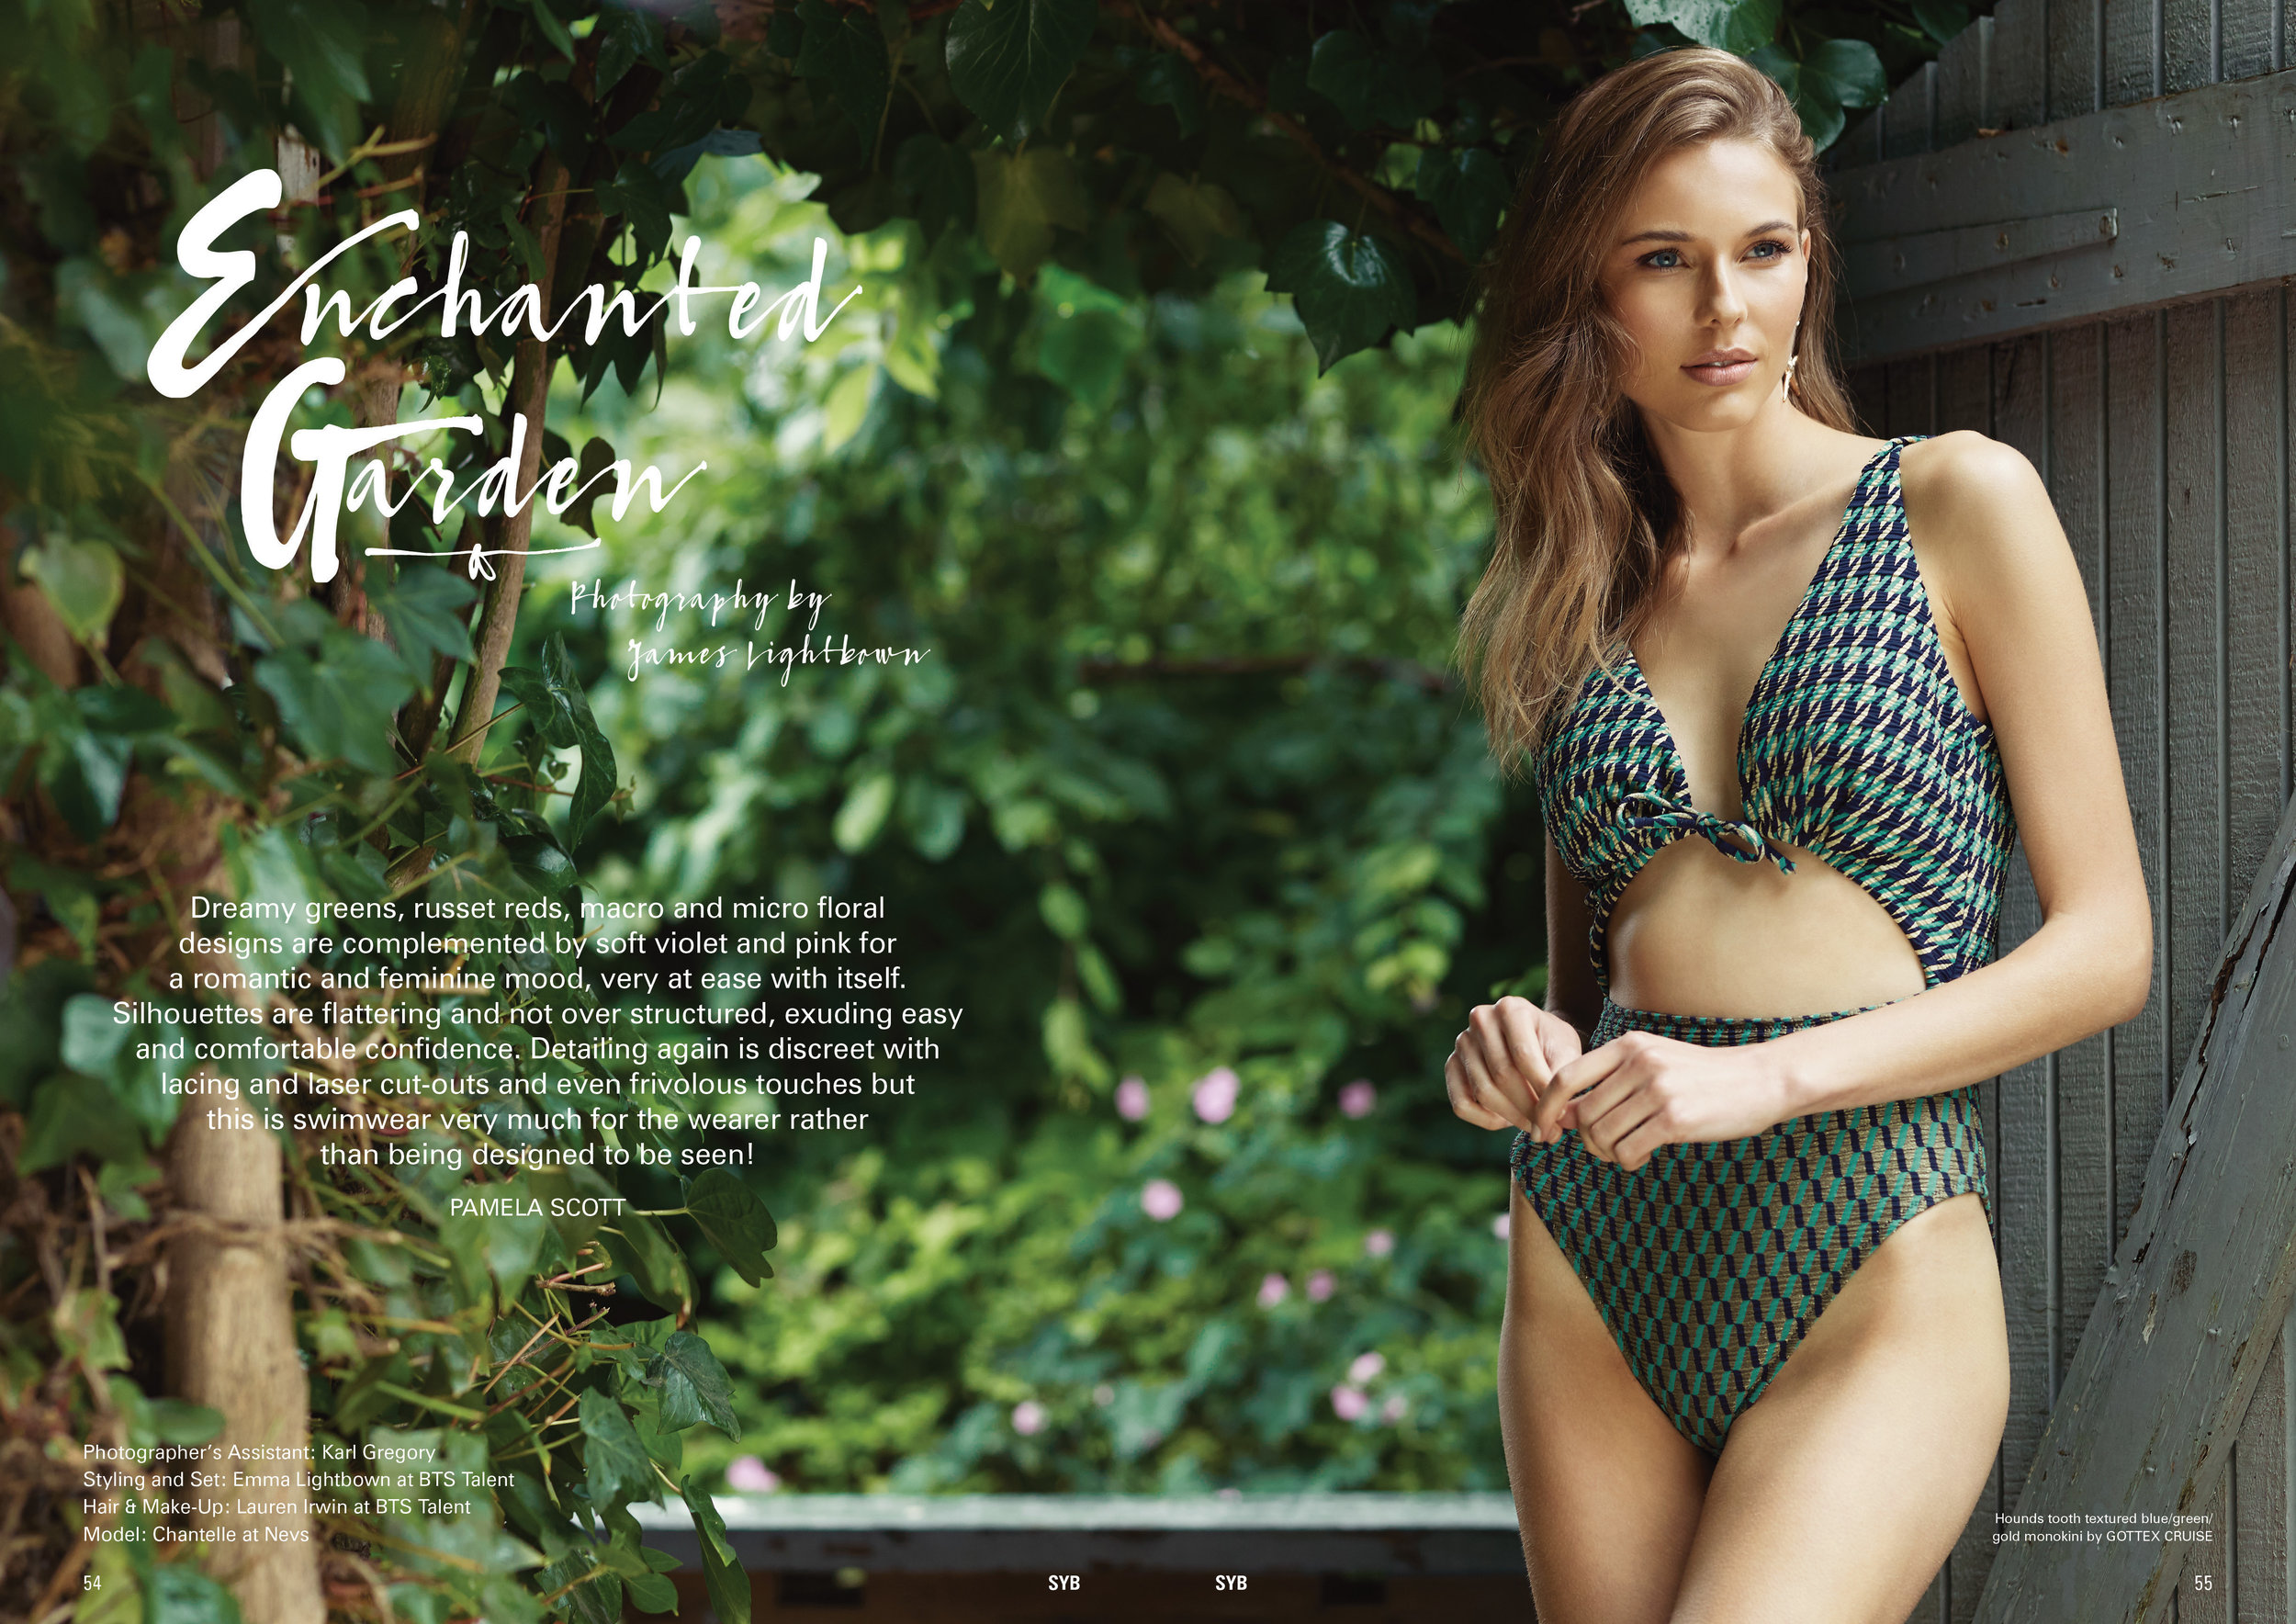 JamesLightbown_SwimwearYearbook_Enchanted_Garden_p54-70-1.jpg